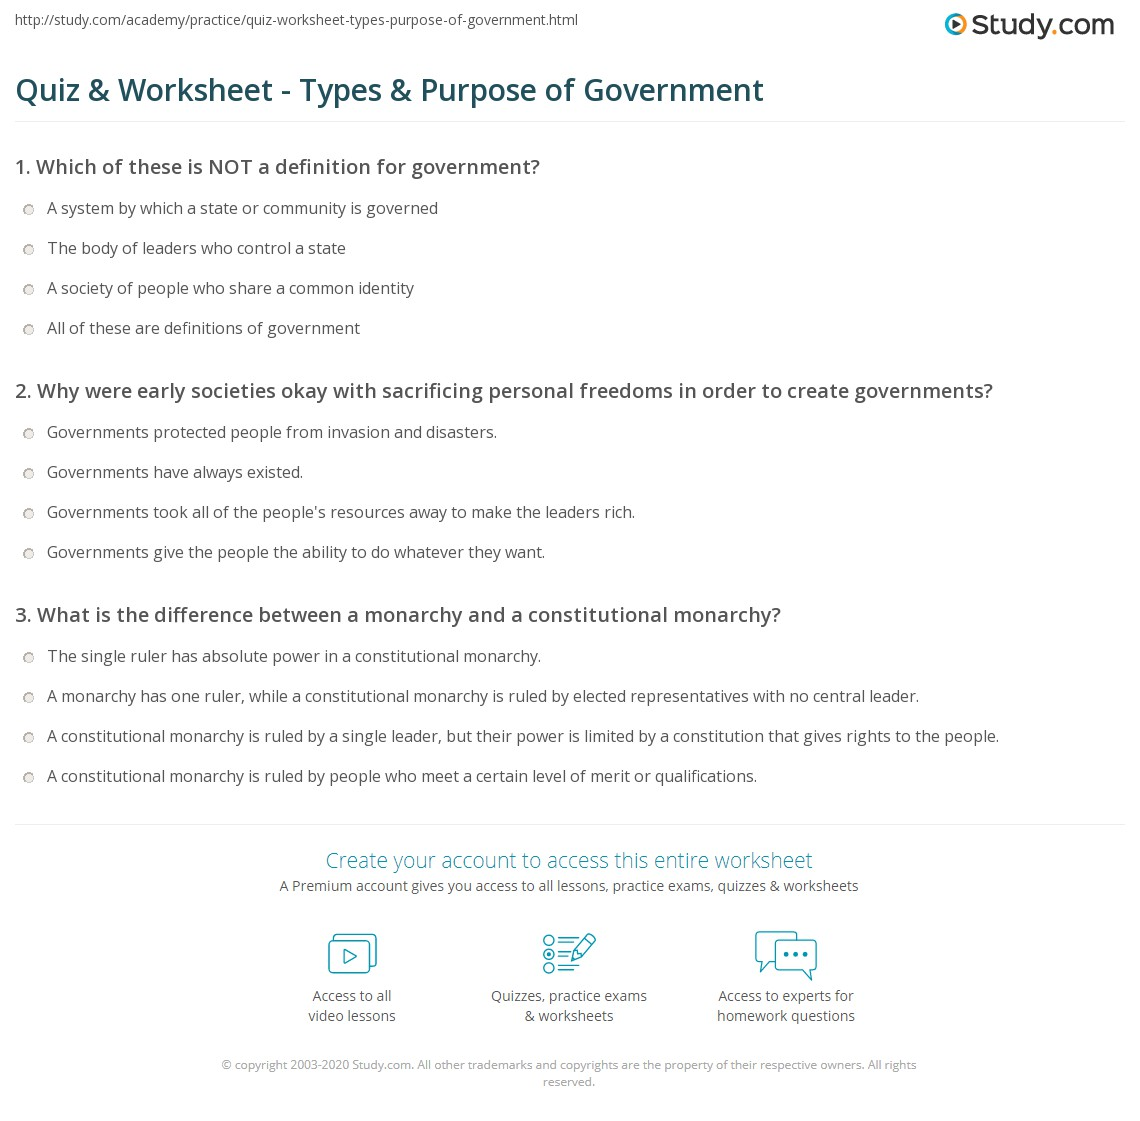 Quiz W Ksheet Types Purpose Of Government Study